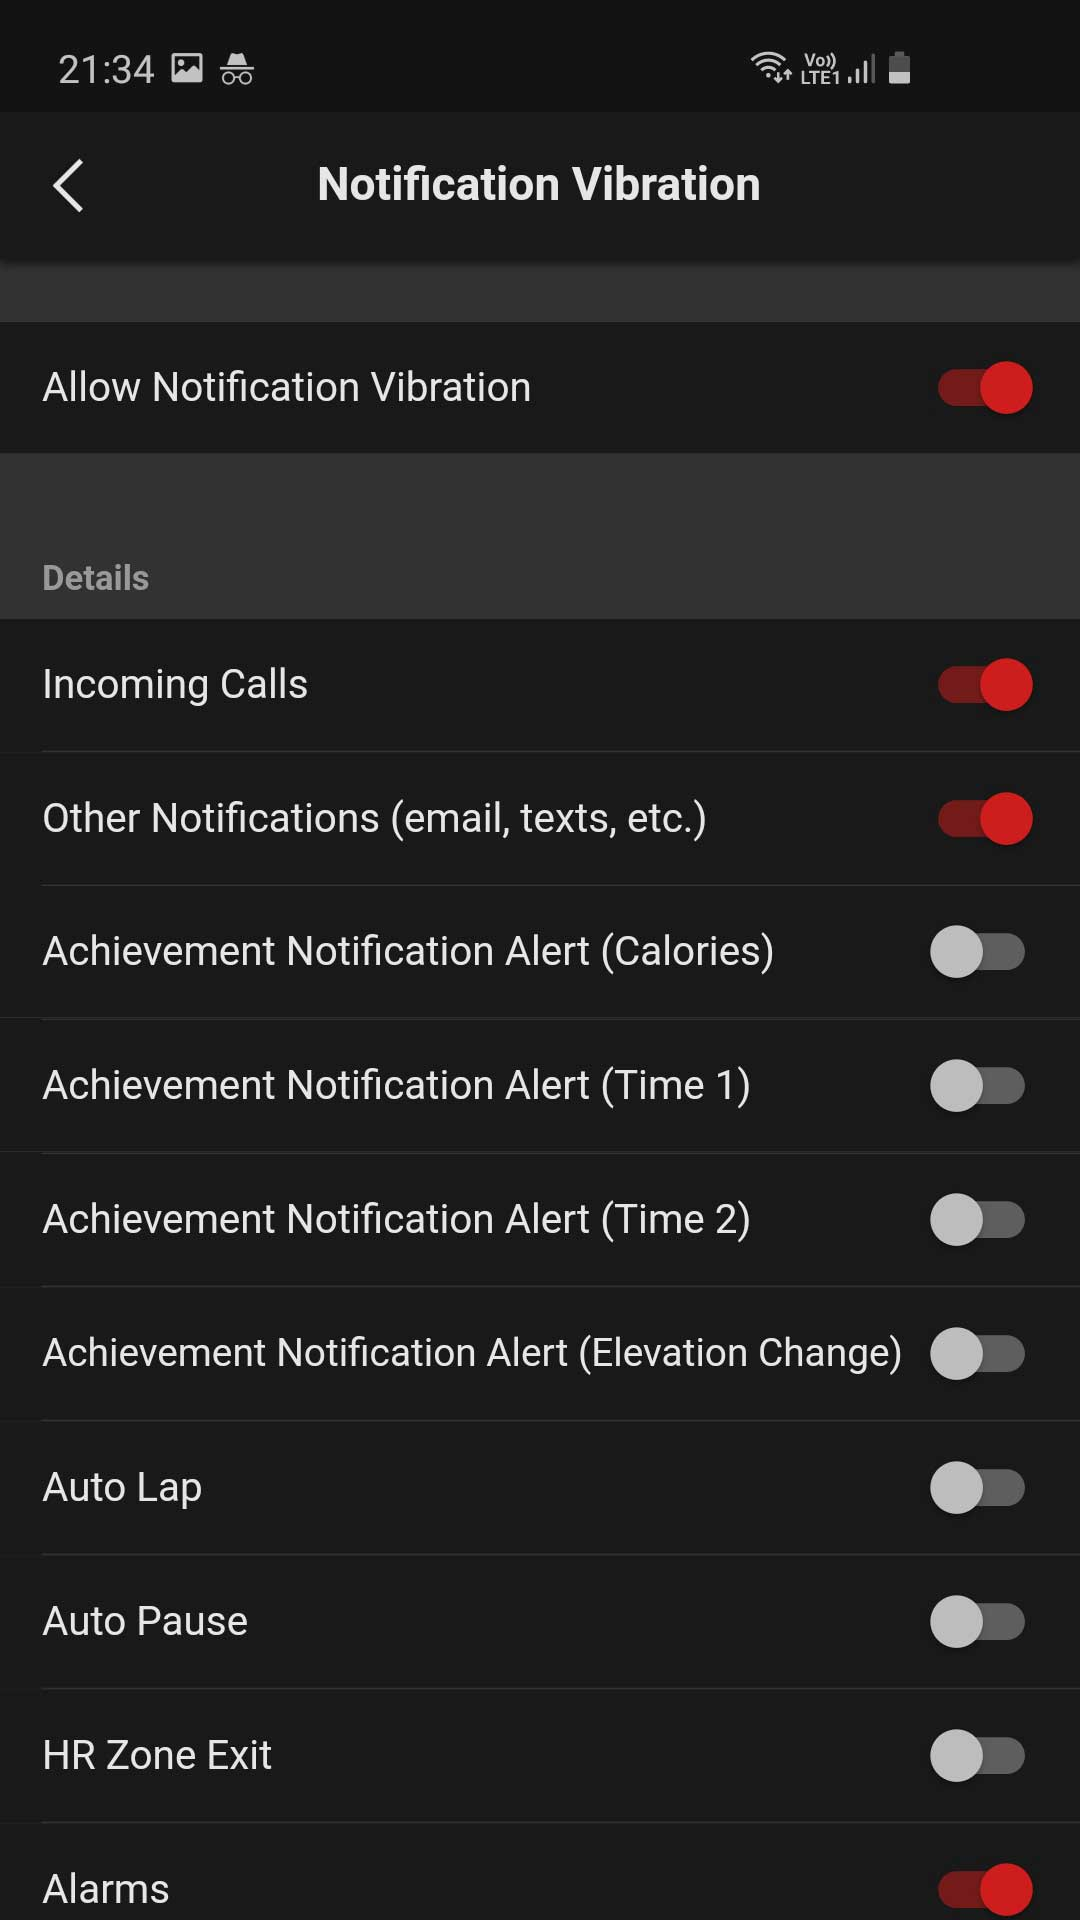 G-SHOCK MOVE Notification Vibration menu